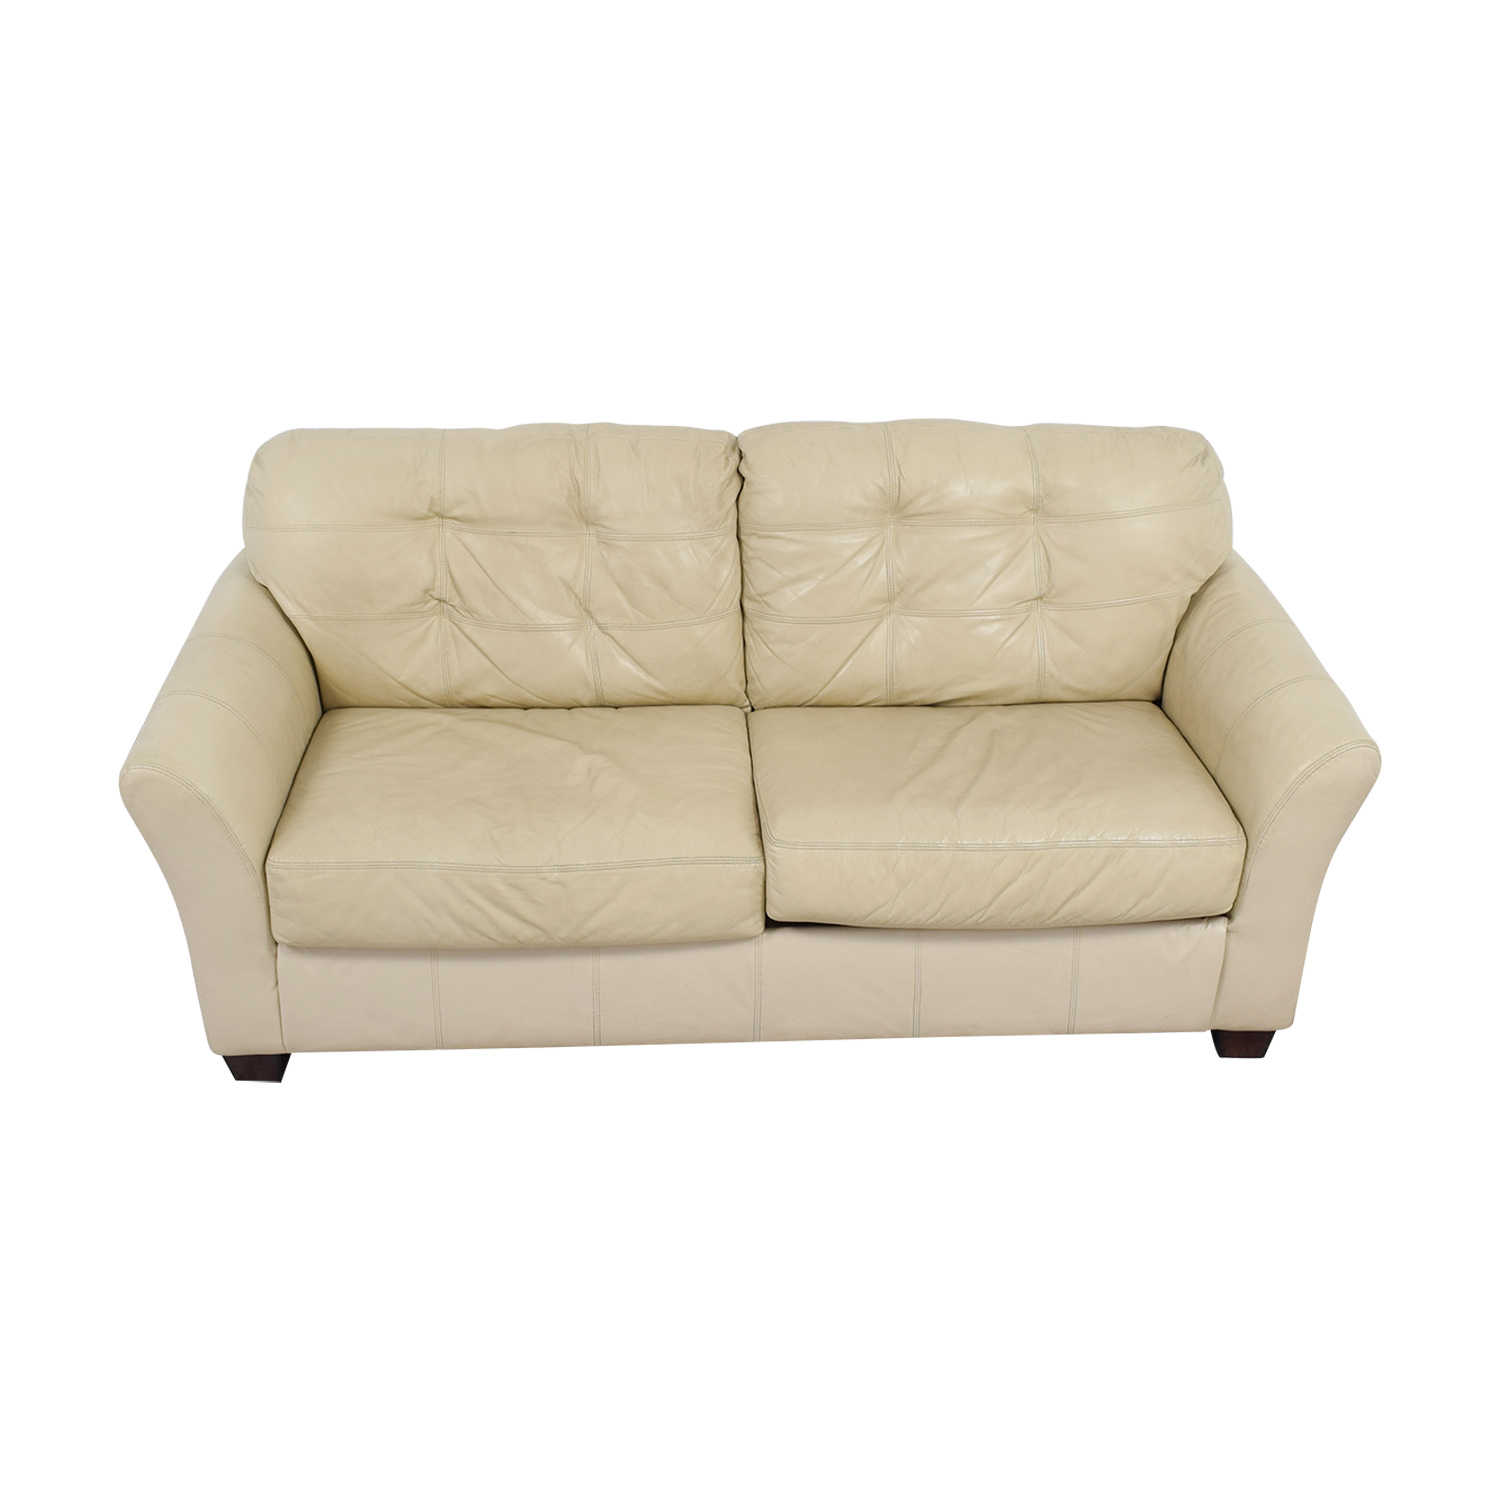 Used sofa and loveseat sofa reclining sets set deals couch for Leather sofa and loveseat set